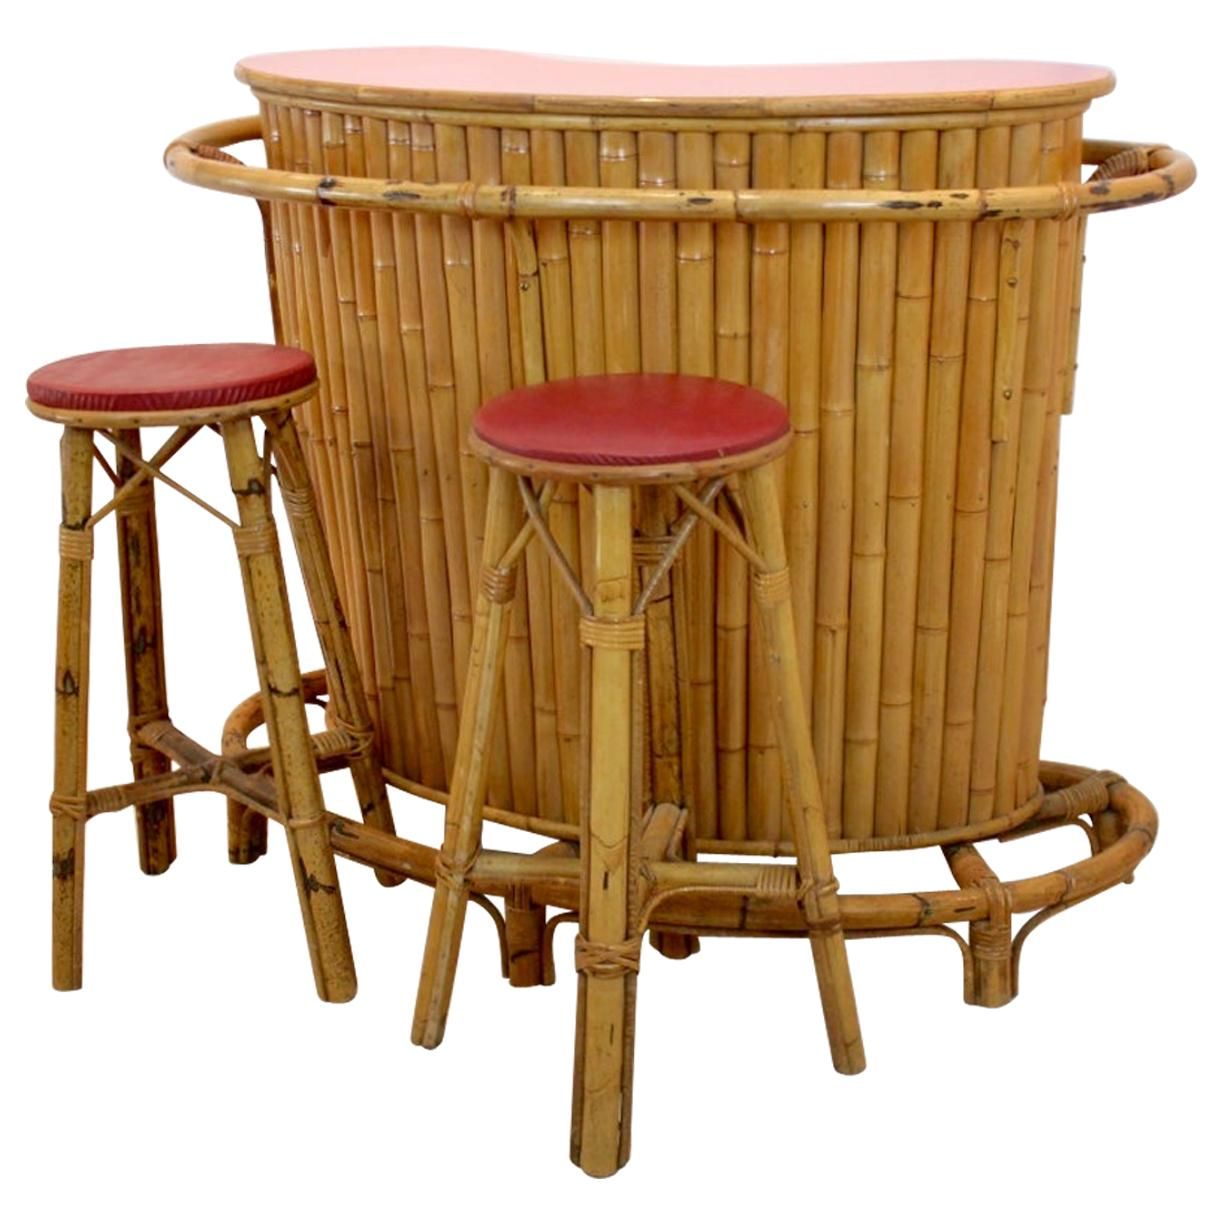 Chic and Versatile French Midcentury Rattan and Bamboo Tiki Bar with Stools